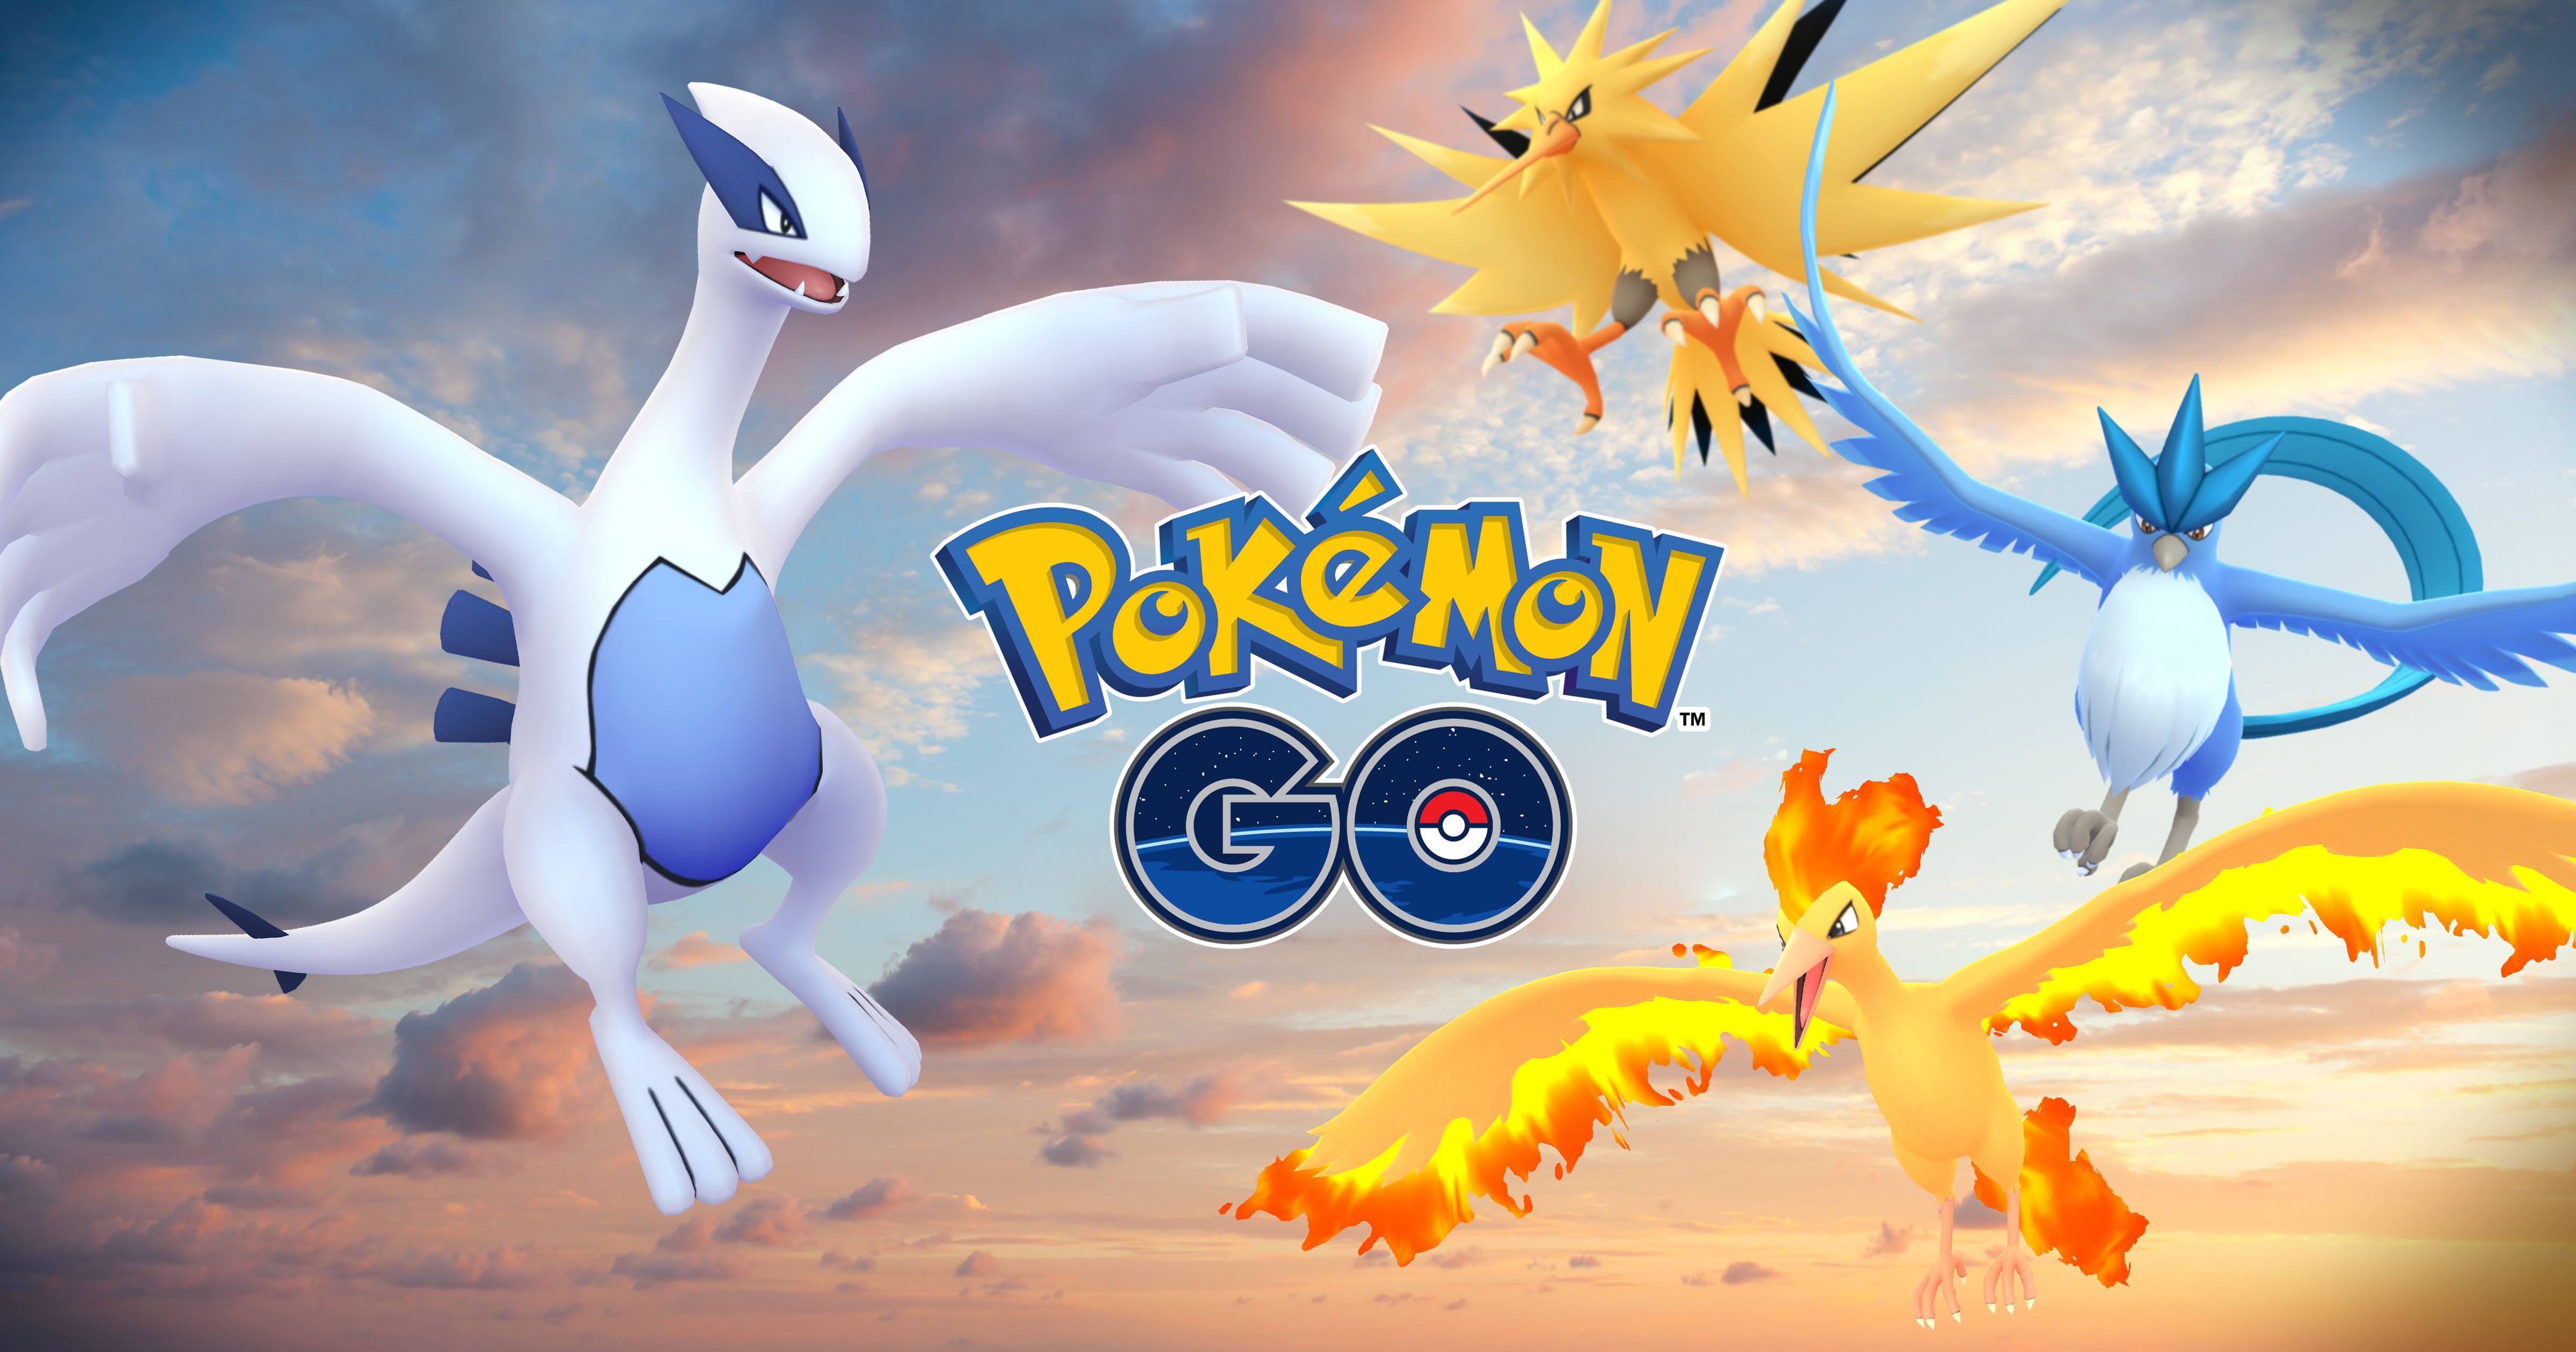 Pokemon Go Mewtwo Boss Guide – How To Find And Capture The Legendary Raid Pokemon